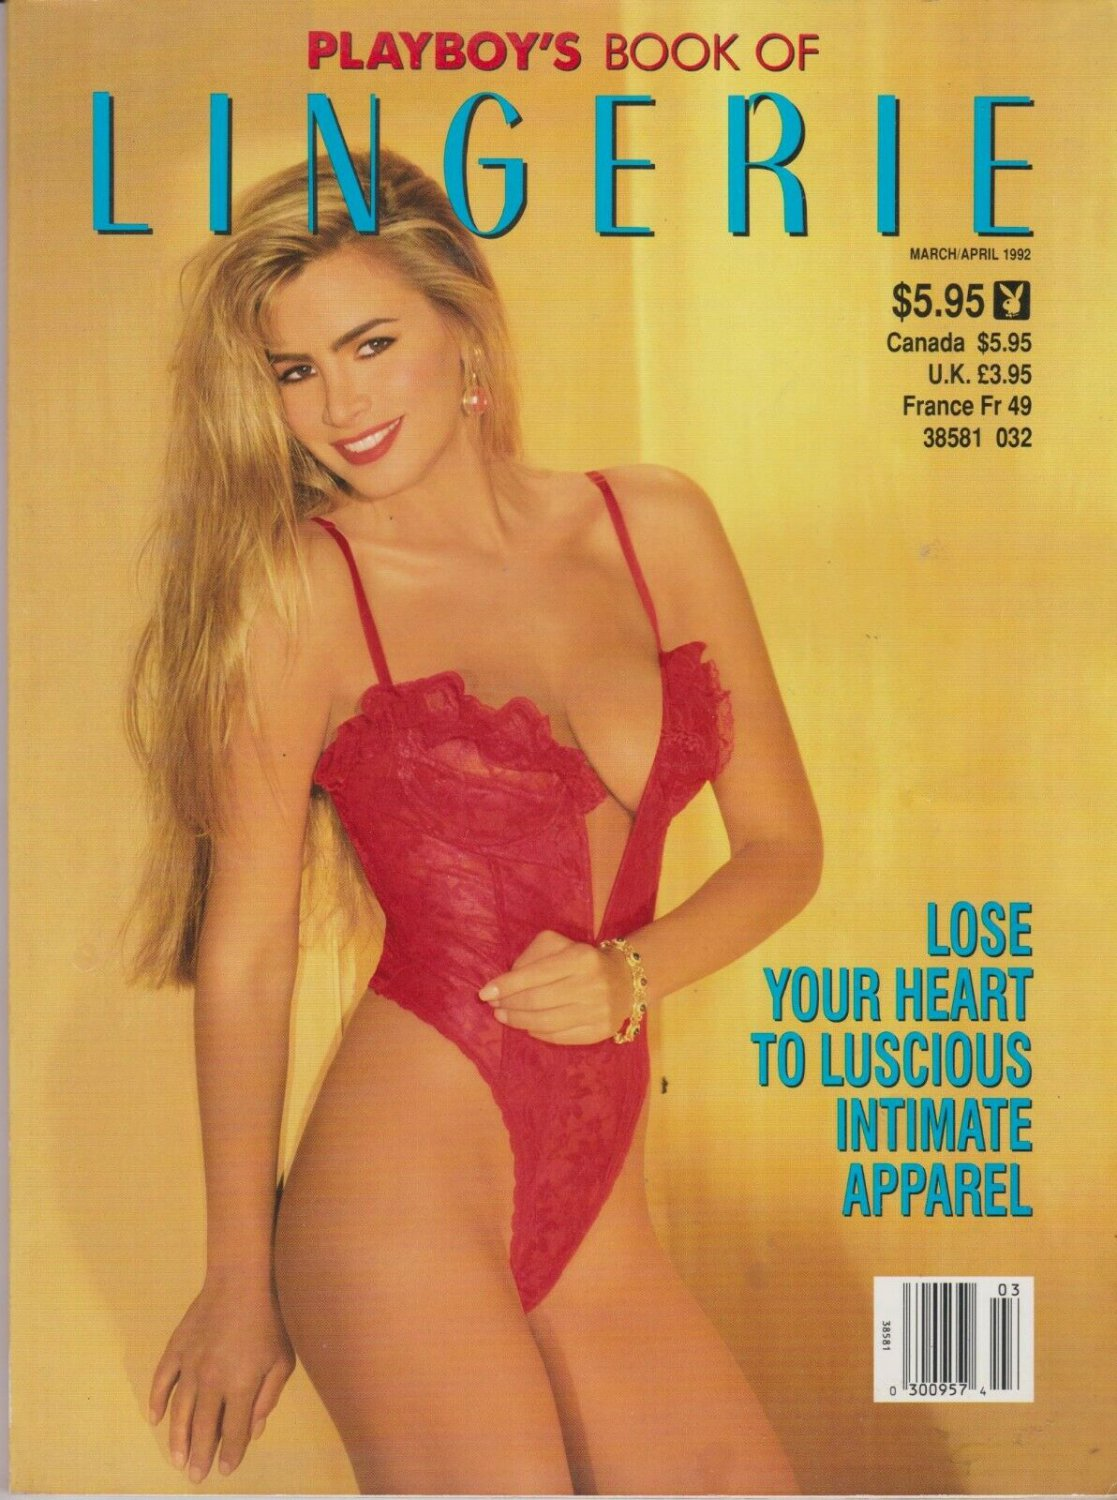 Playboy Supplement Magazine - PLAYBOY'S BOOK OF LINGERIE MARCH/APRIL 1992